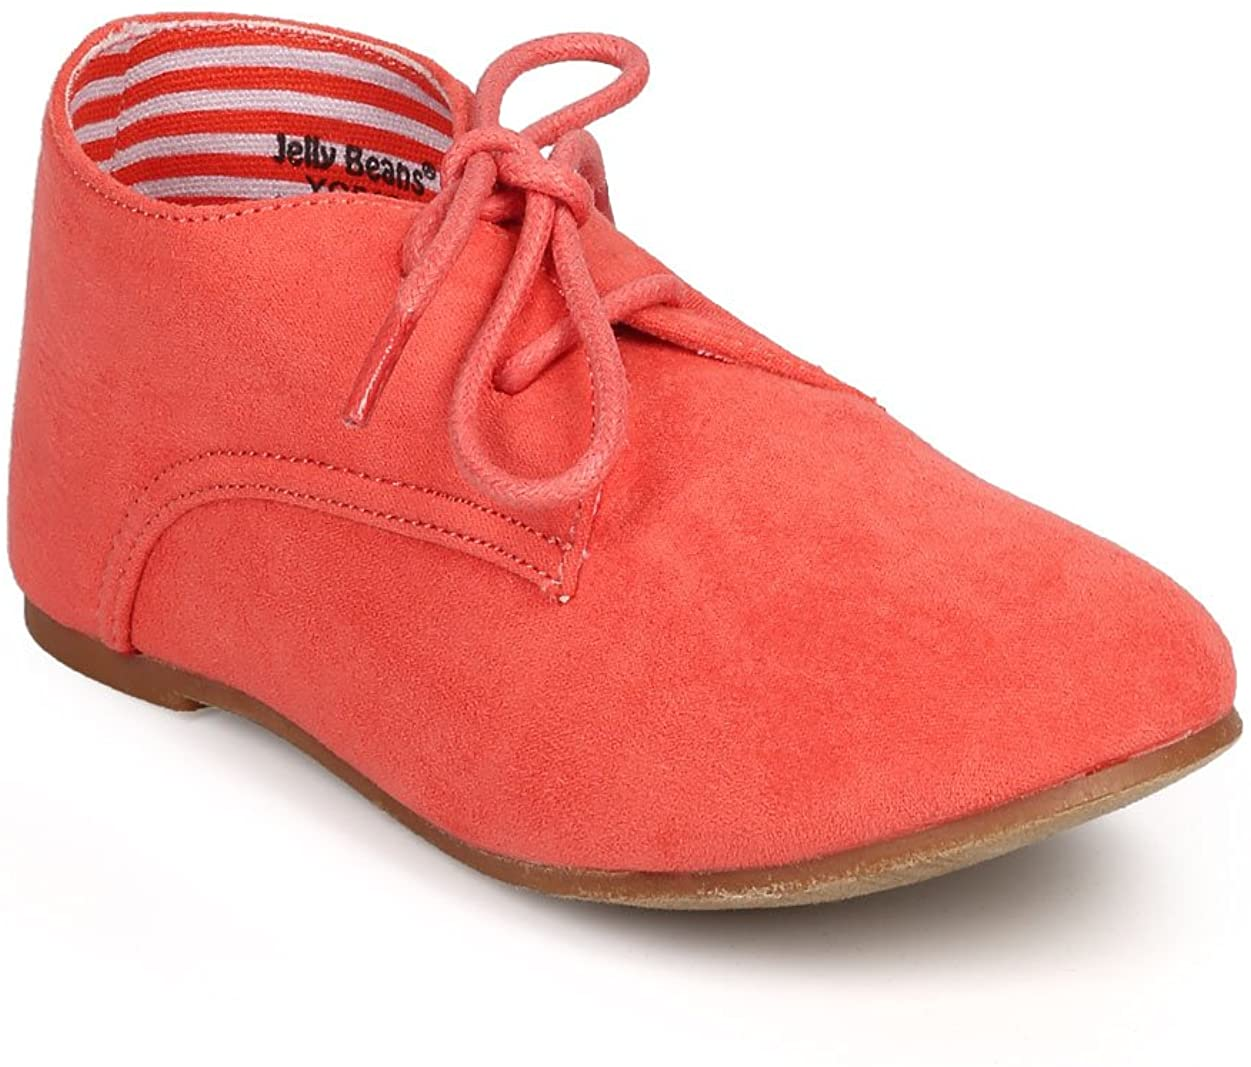 Suede Round Toe Lace Up Classic Ankle Oxford Flat (Toddler/Little Girl/Big Girl) DG66 - Coral (Size: Little Kid 11)